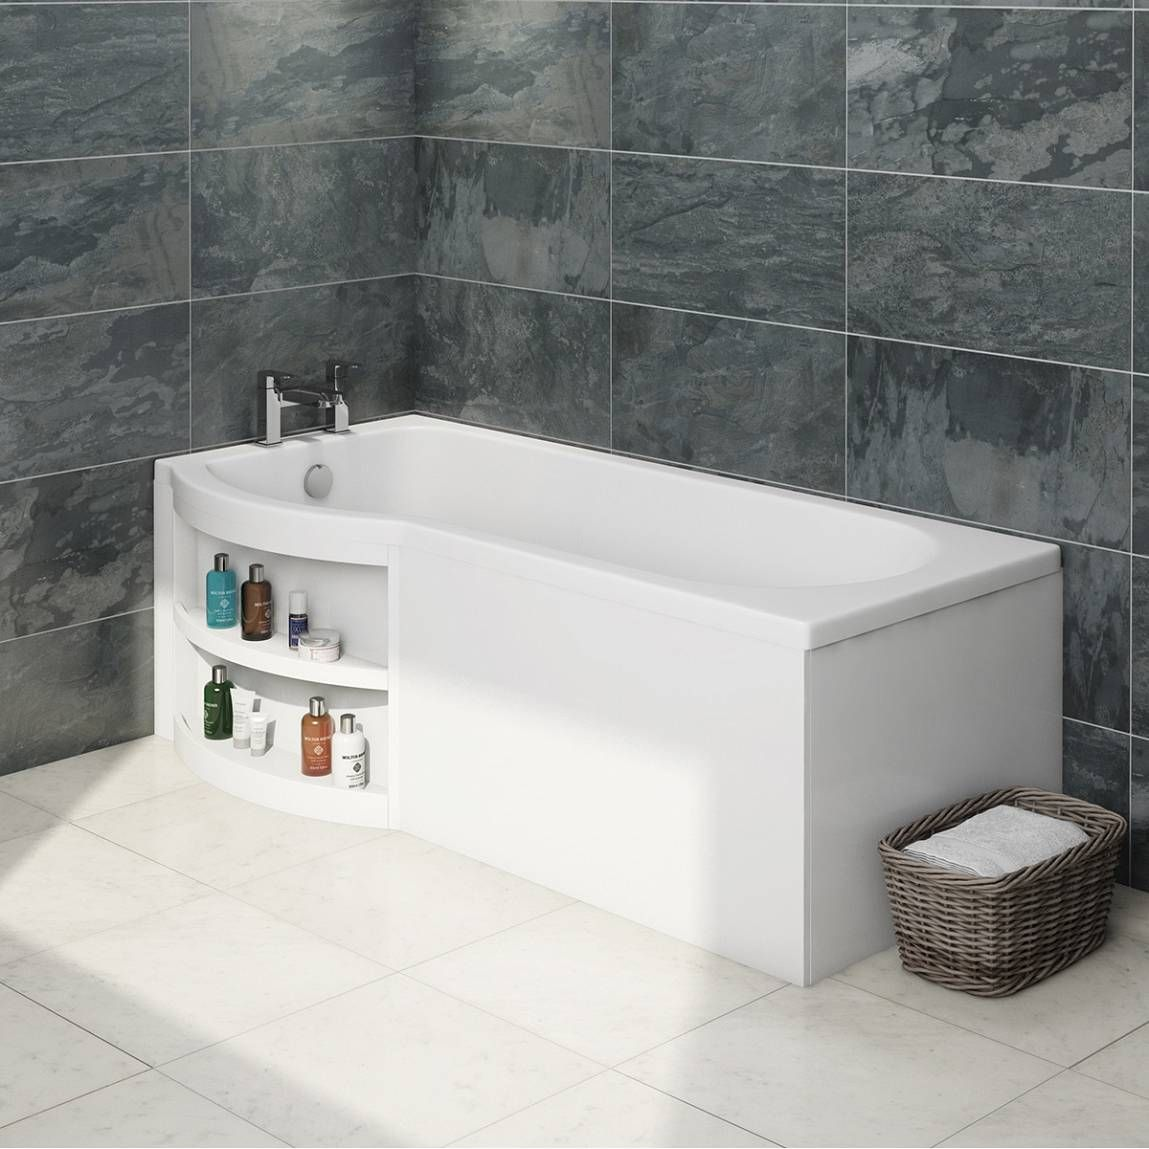 Bathroom Accessories Victoria Plumb myspace water saving p shape shower bath left hand with storage